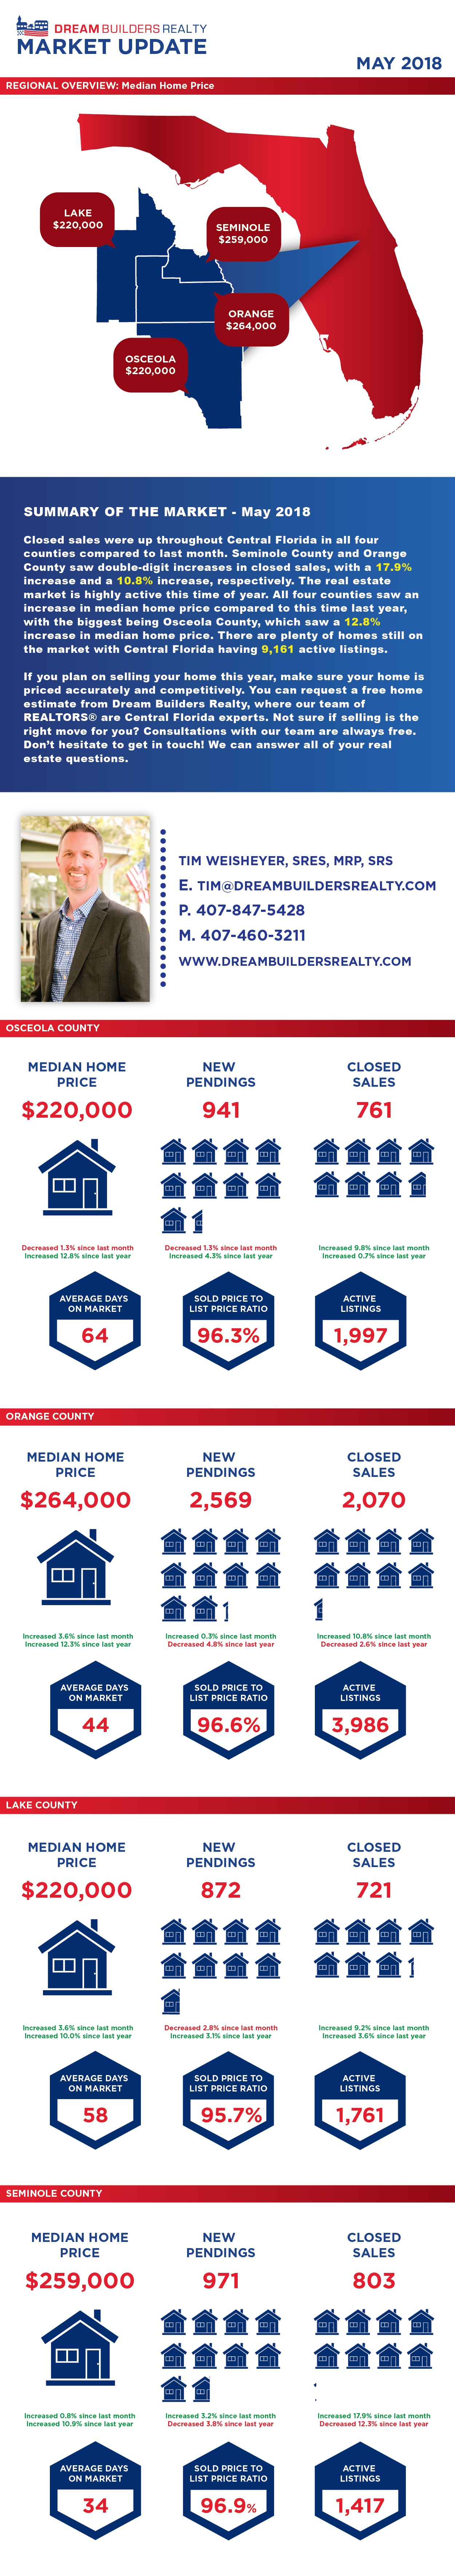 central florida market update for may 2018 - selling a home in central florida - buying a home in central florida